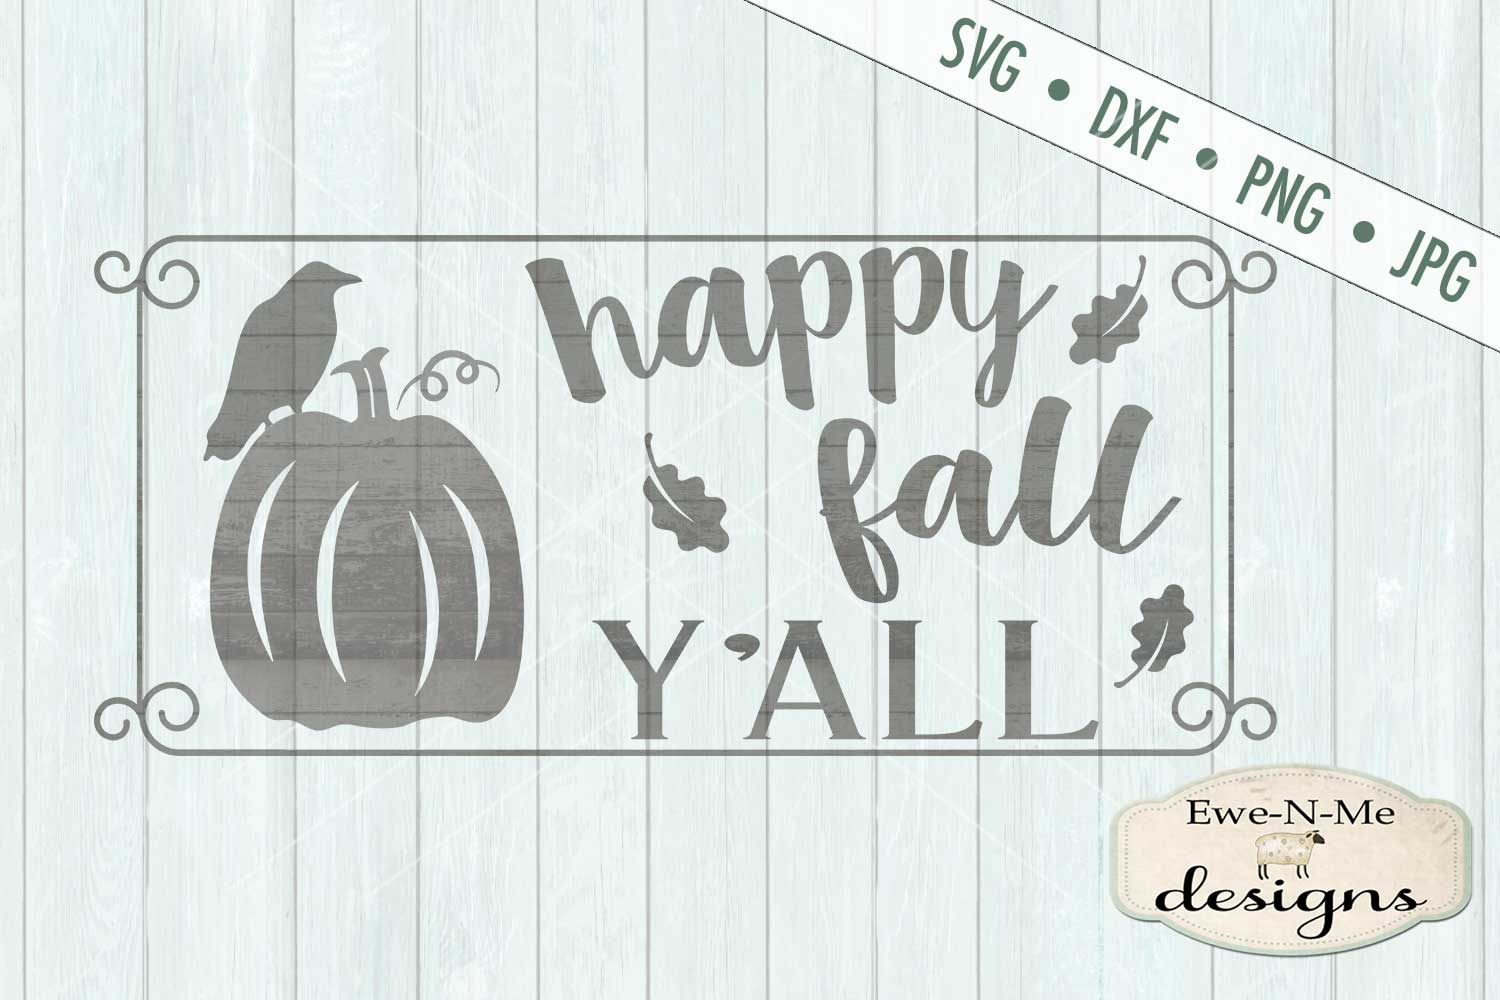 Happy Fall Y'all Crow Pumpkin SVG DXF Files example image 2